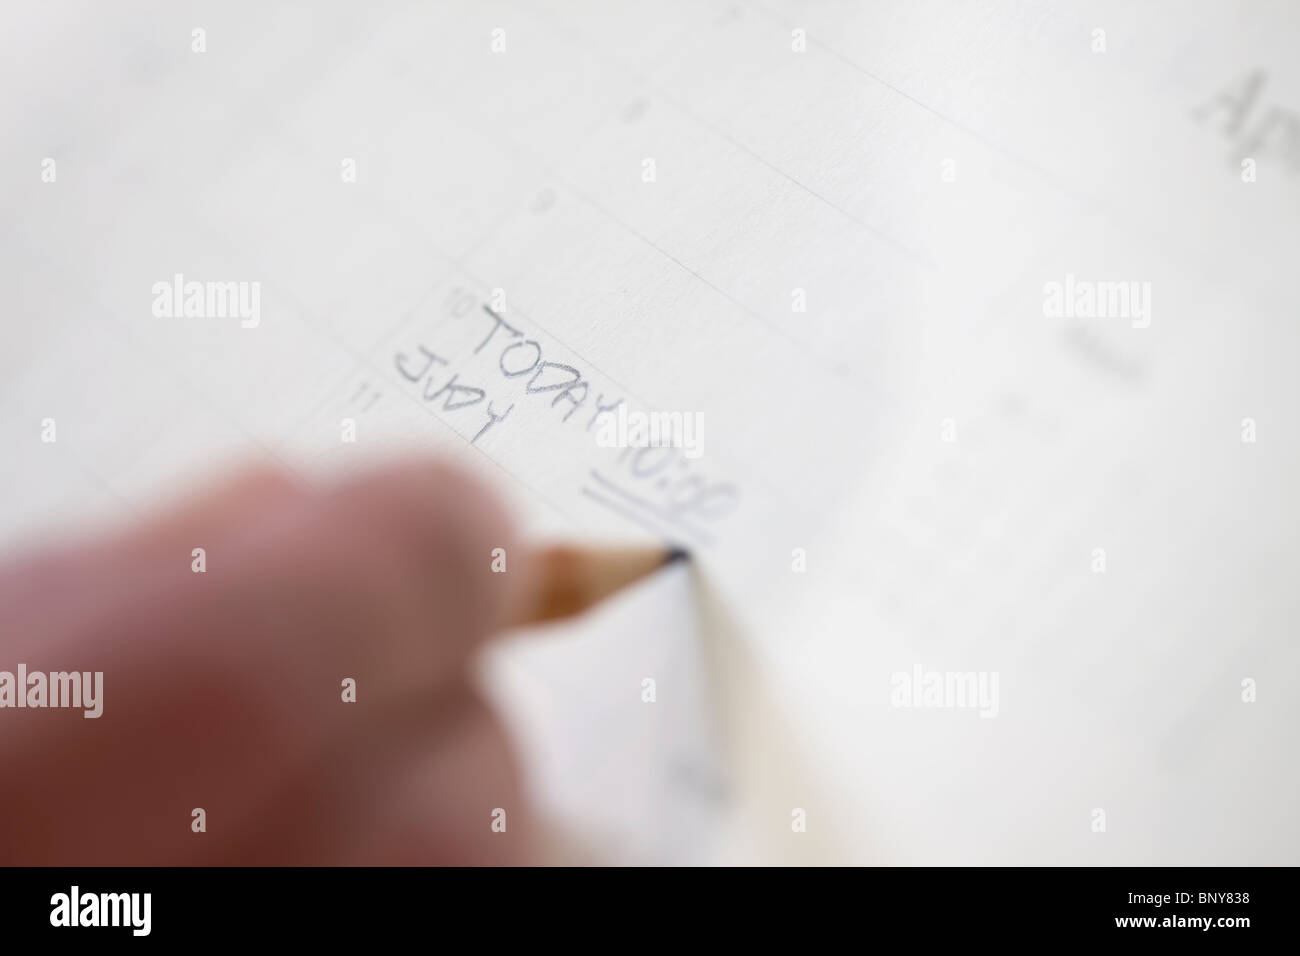 Making a note - Stock Image